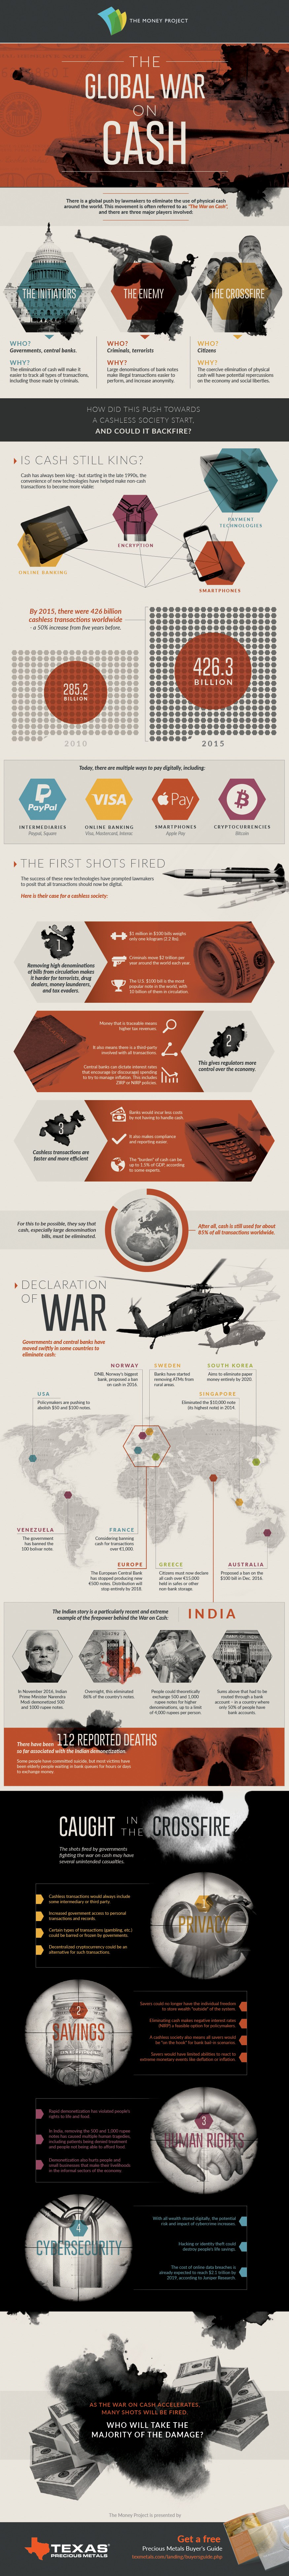 Towards a Cashless Society: The Global War on Cash - Infographic